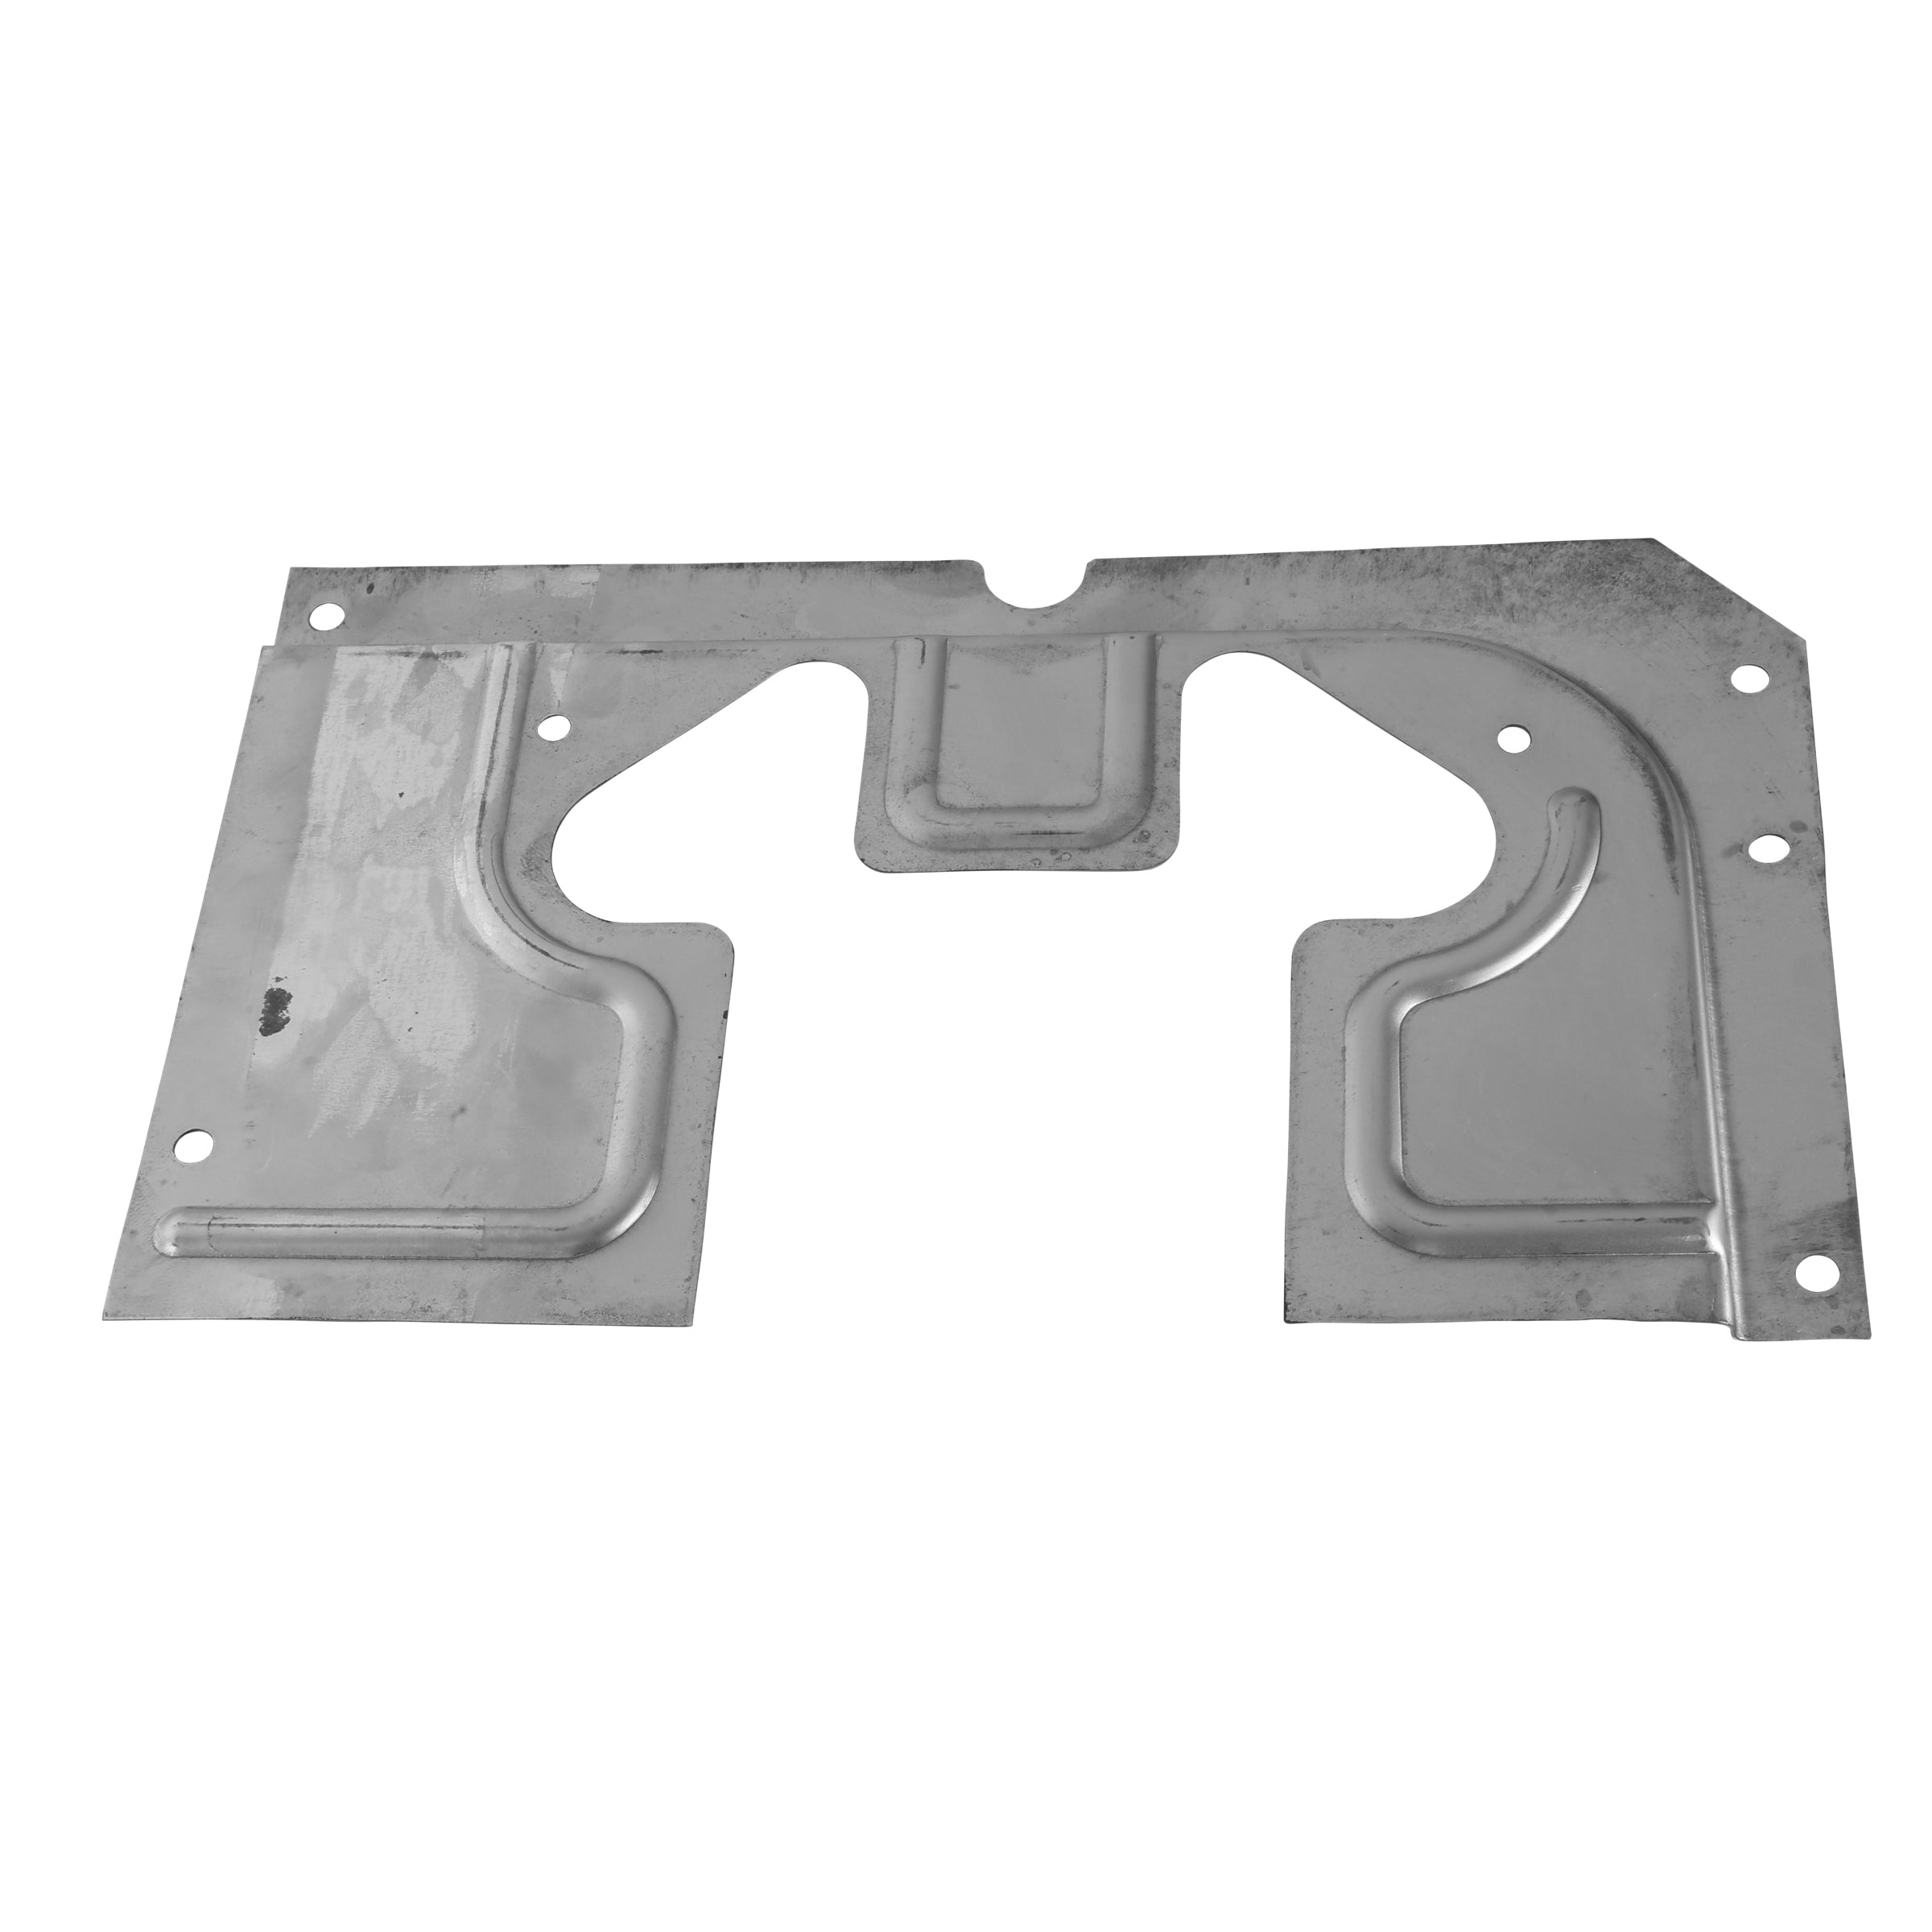 Pedal and Steering Column Floor Plate • 1933-34 Ford